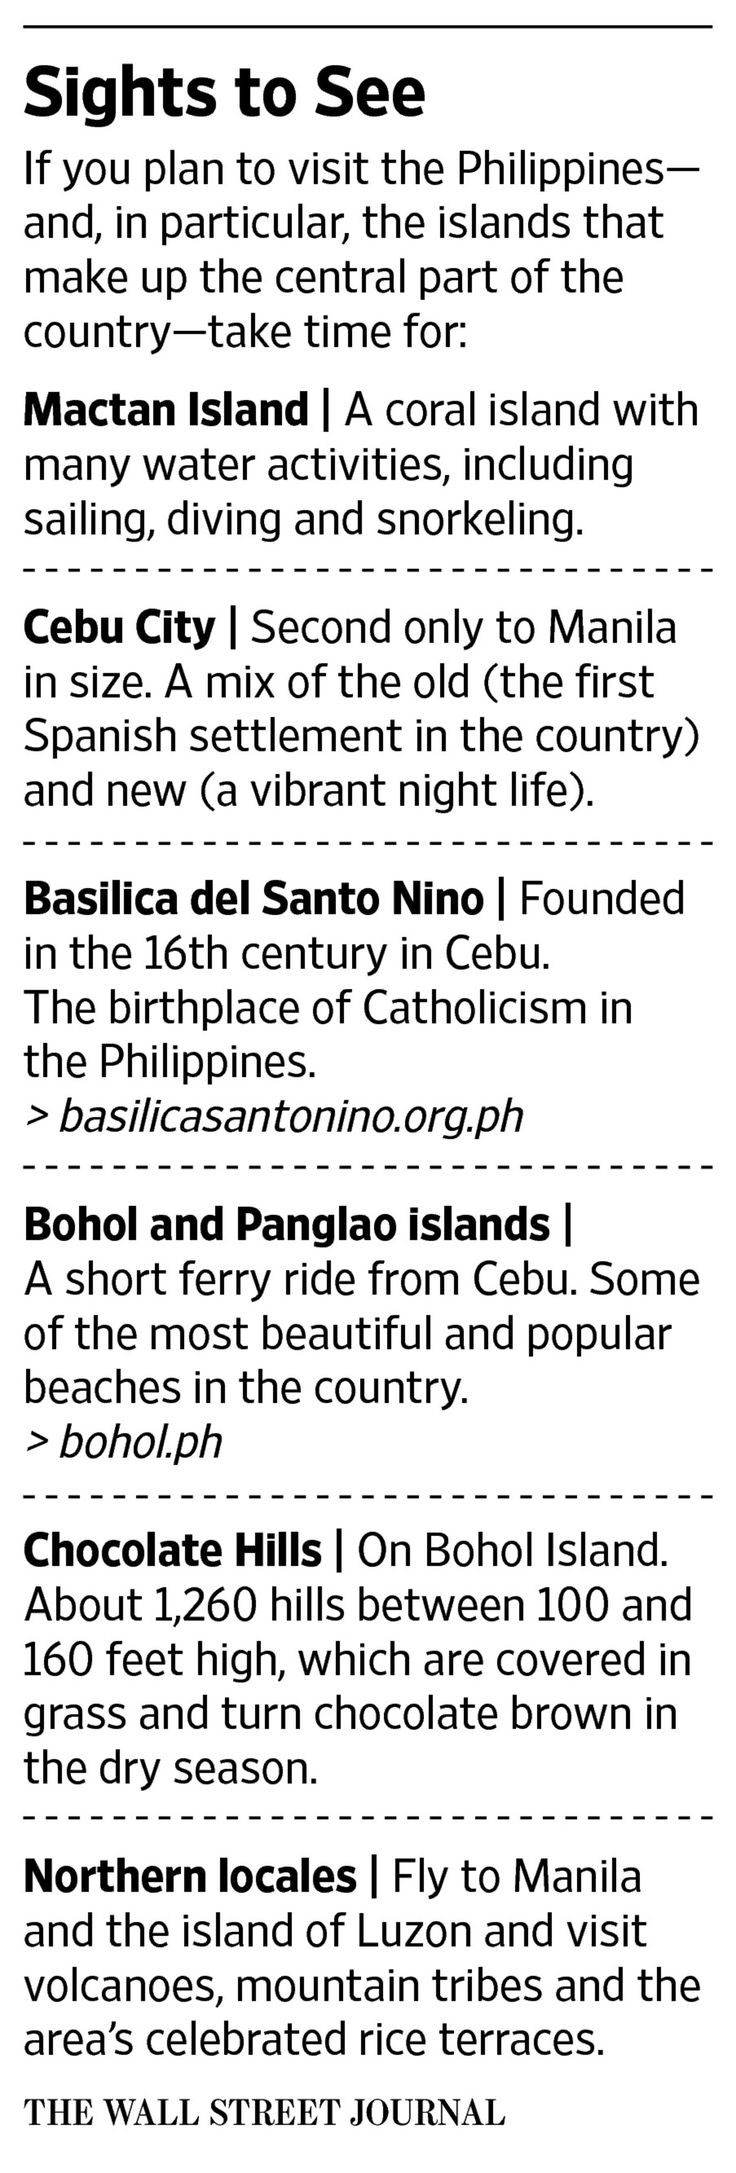 Best Places to Retire Abroad: The Philippines - WSJ